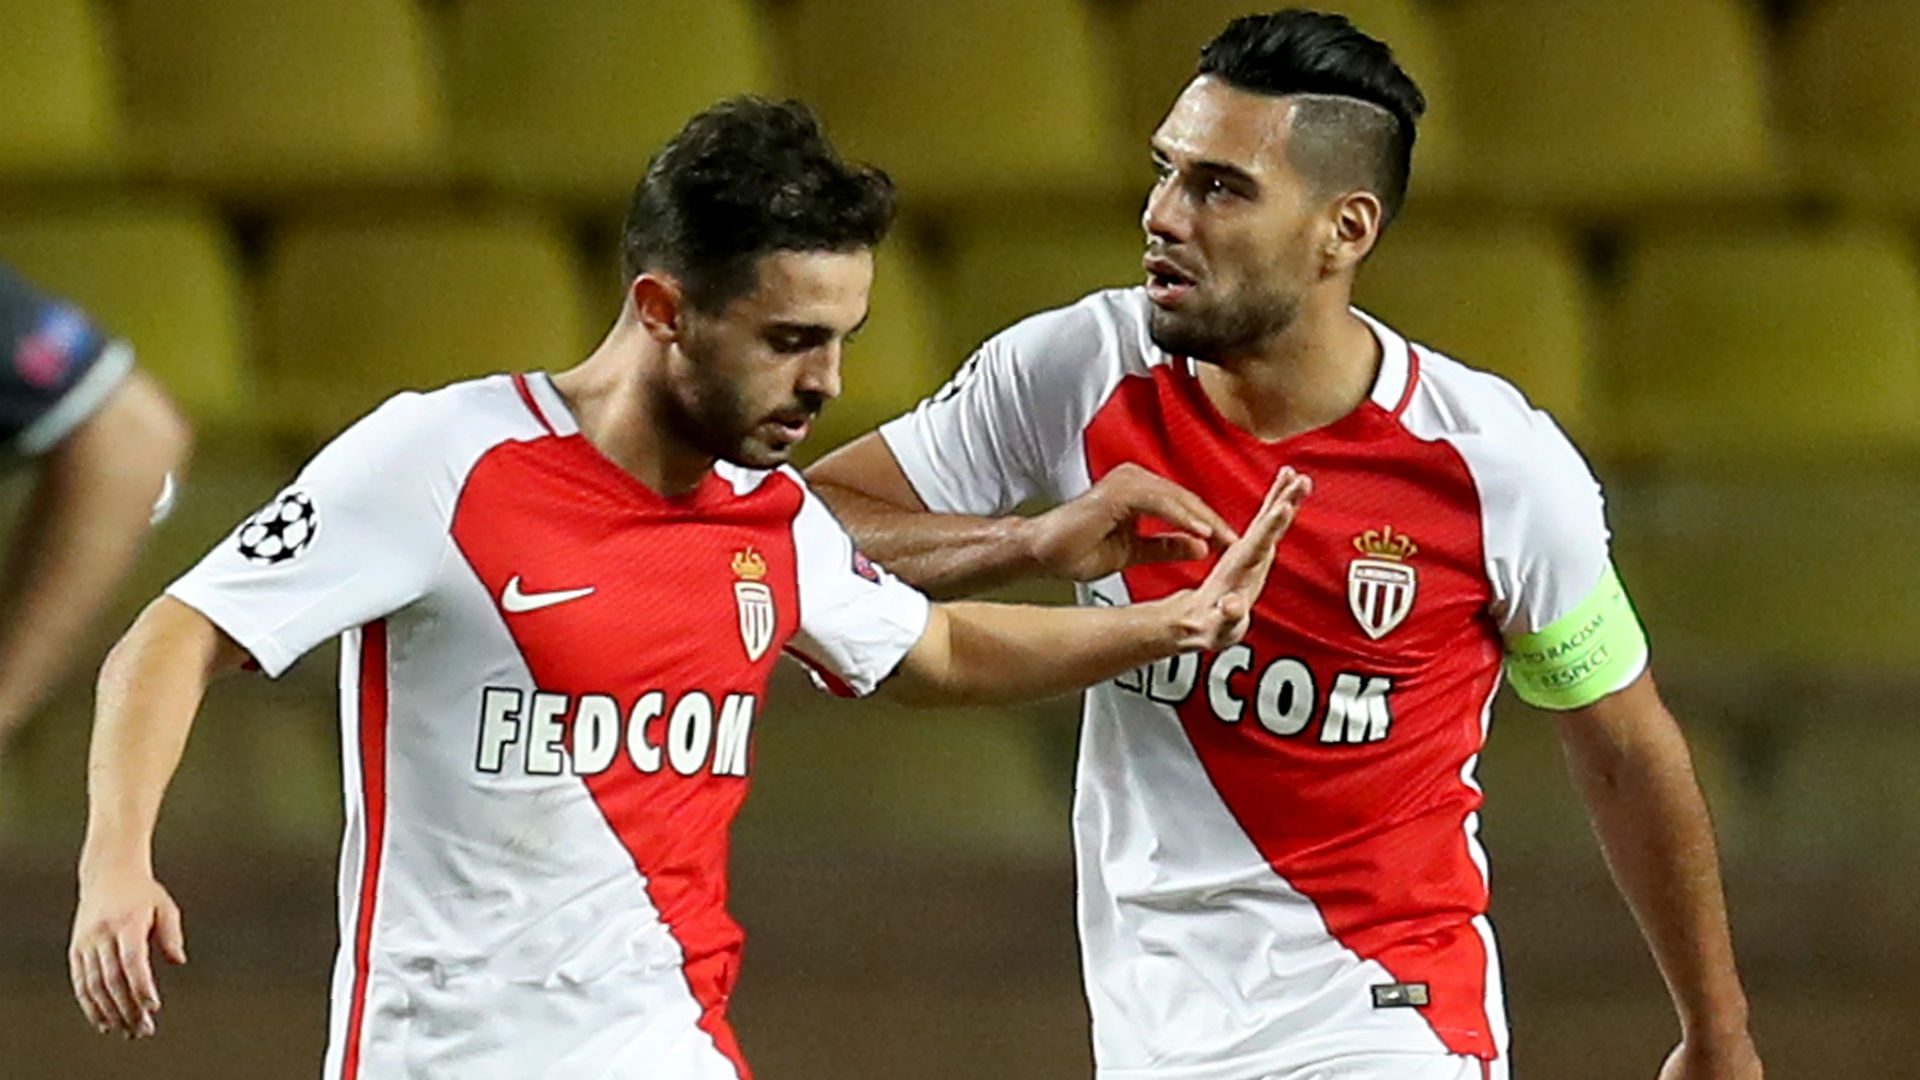 Bernardo Silva Radamel Falcao AS Monaco CSKA Moscow UEFA Champions League 02112016